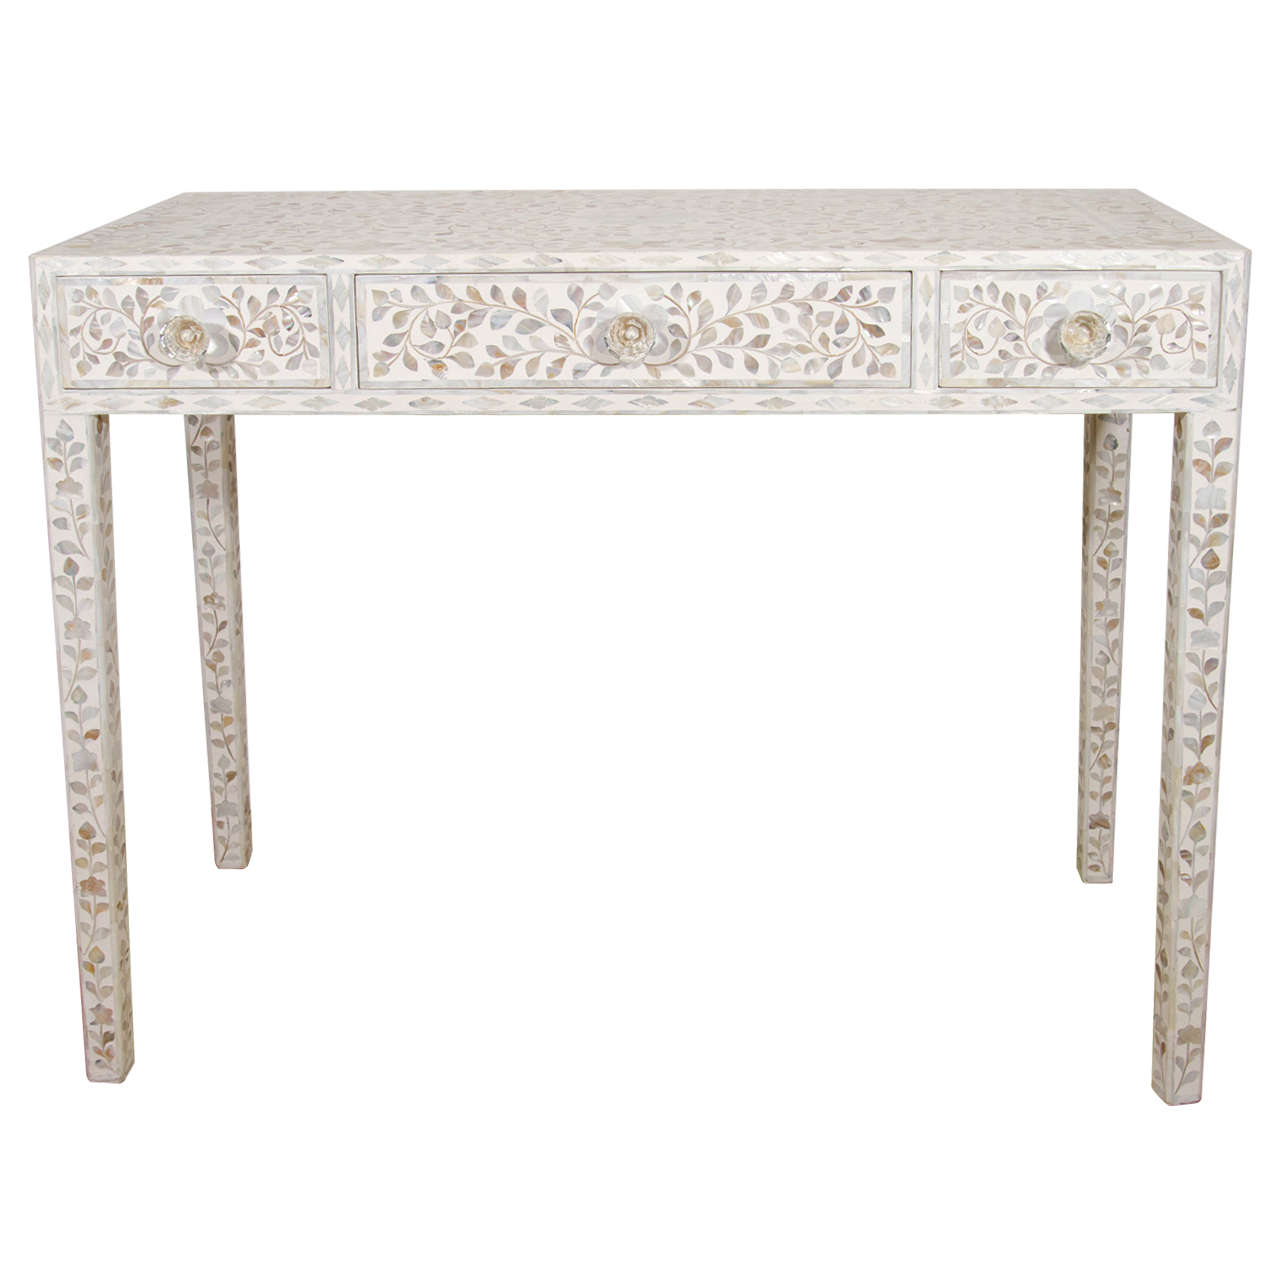 Indian mother of pearl inlaid desk at 1stdibs geotapseo Image collections